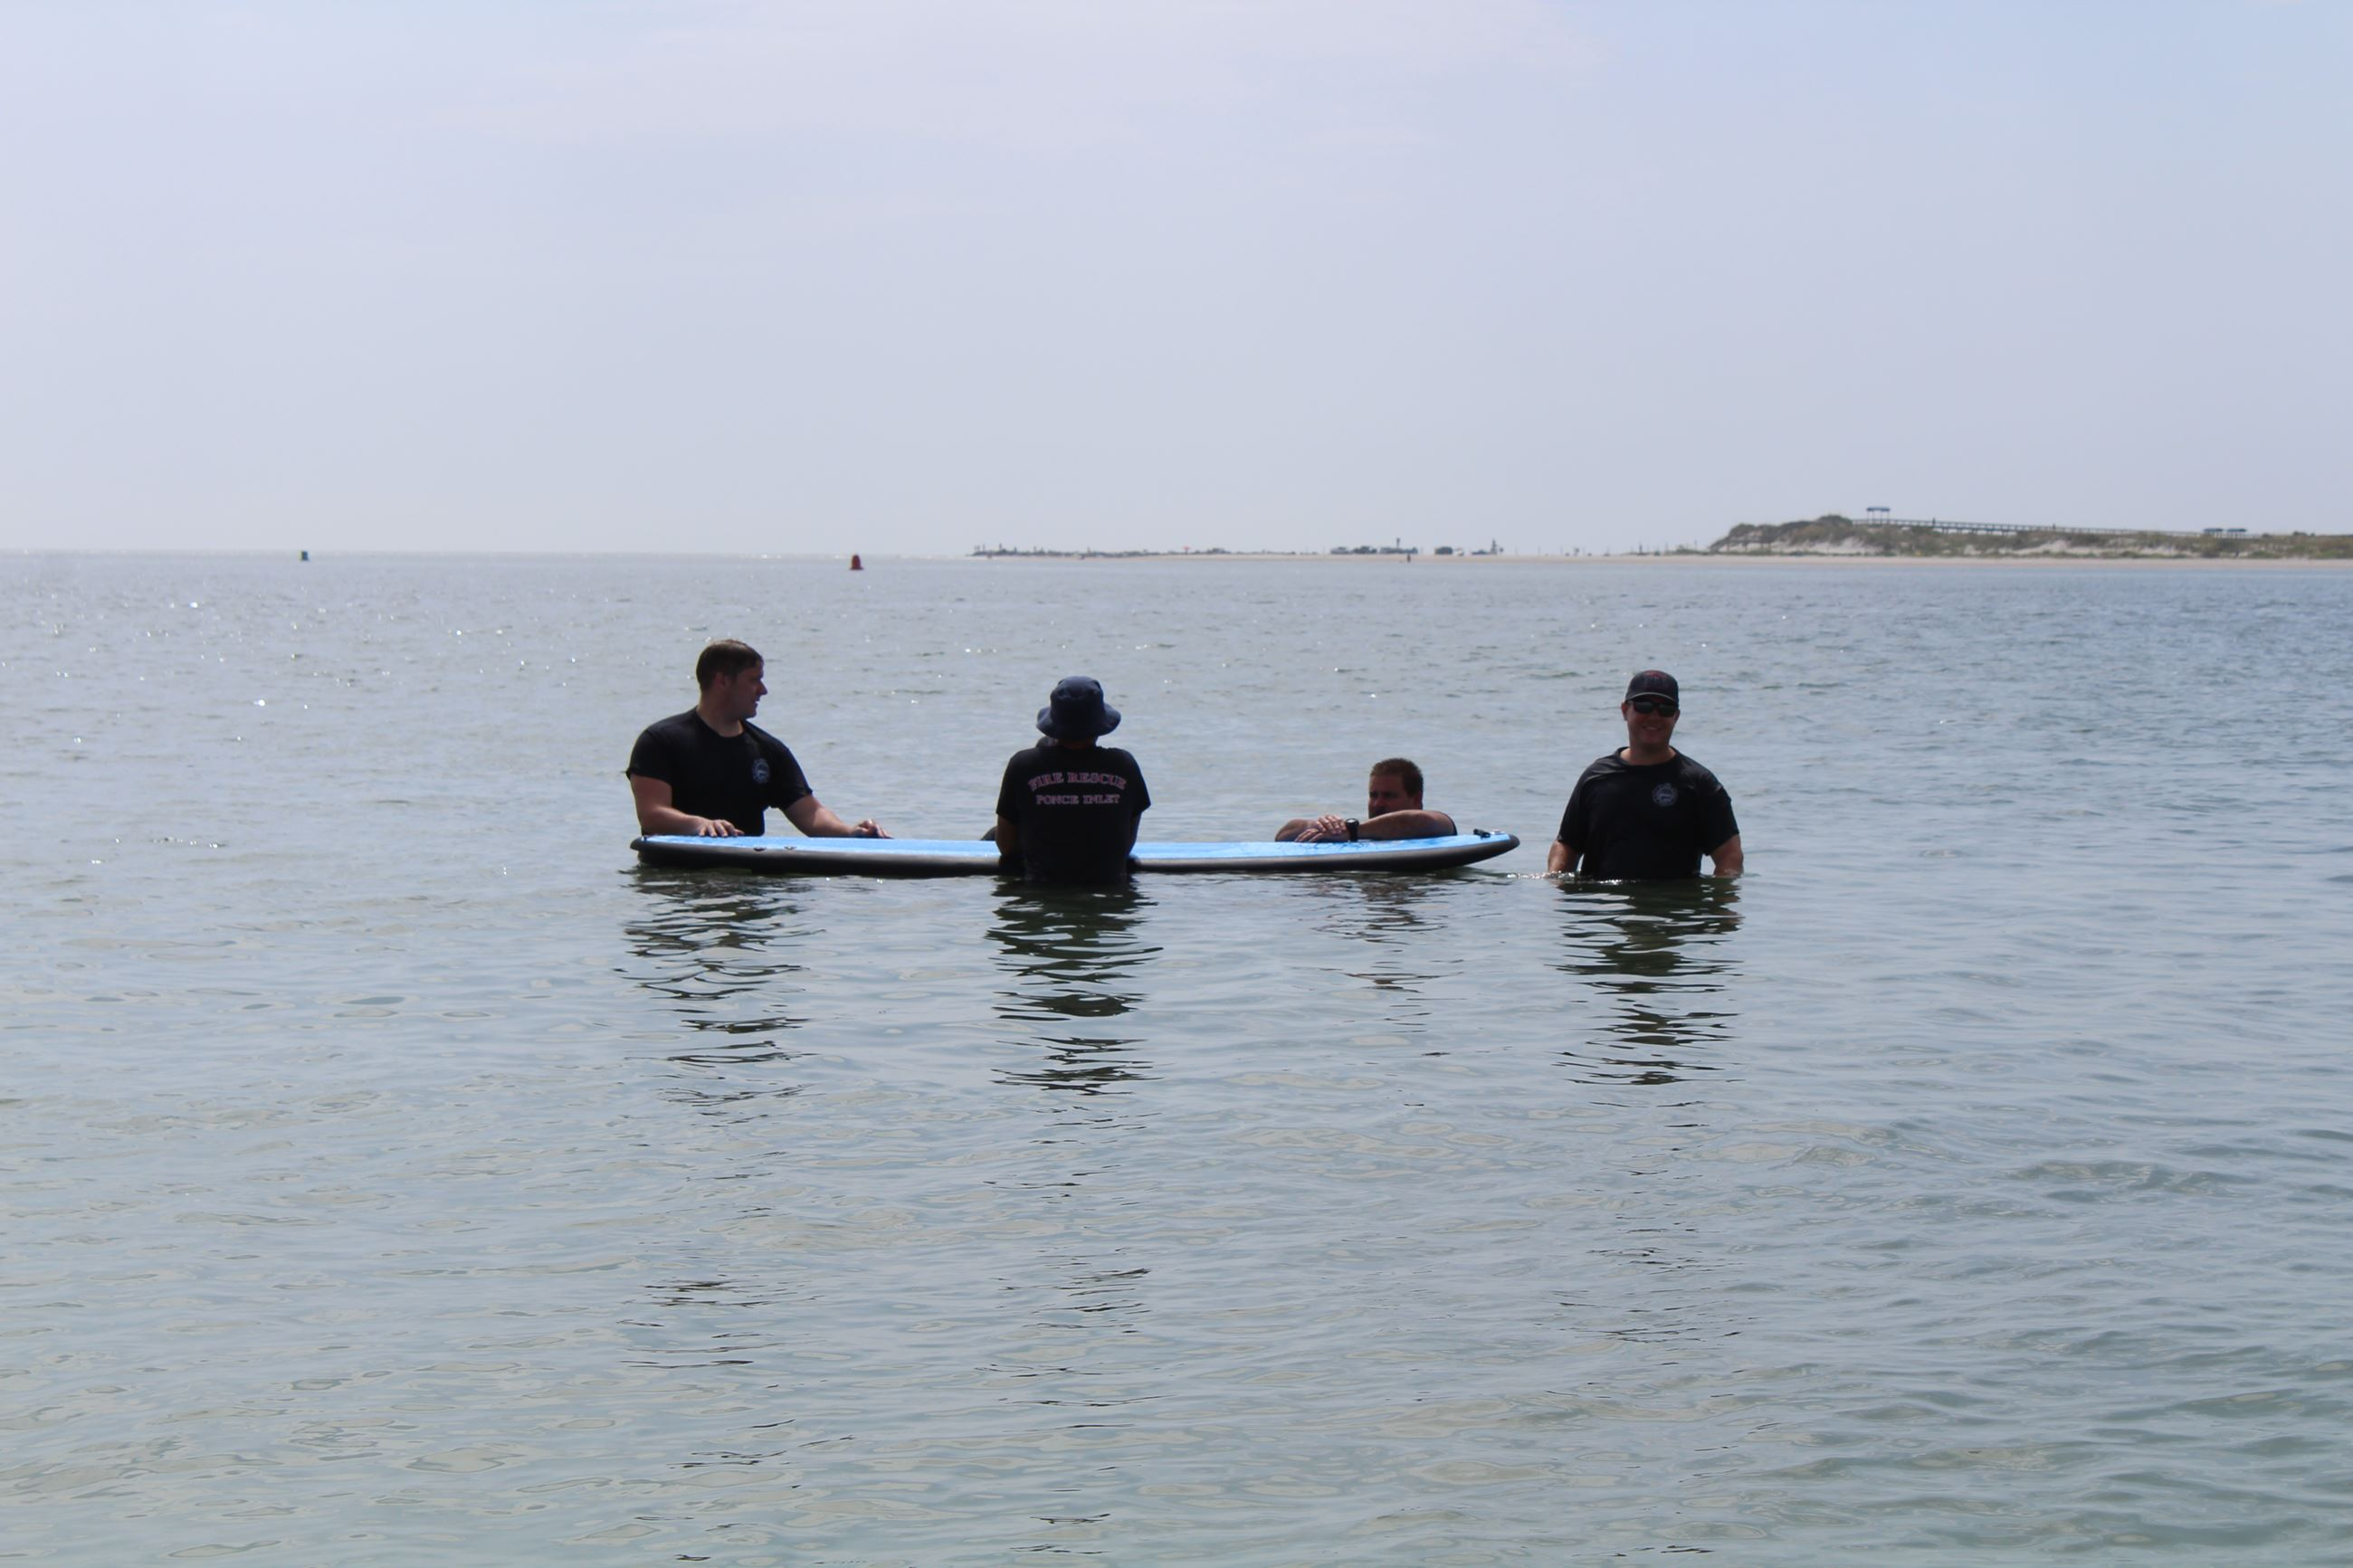 Firefighters in water with paddleboard (2)